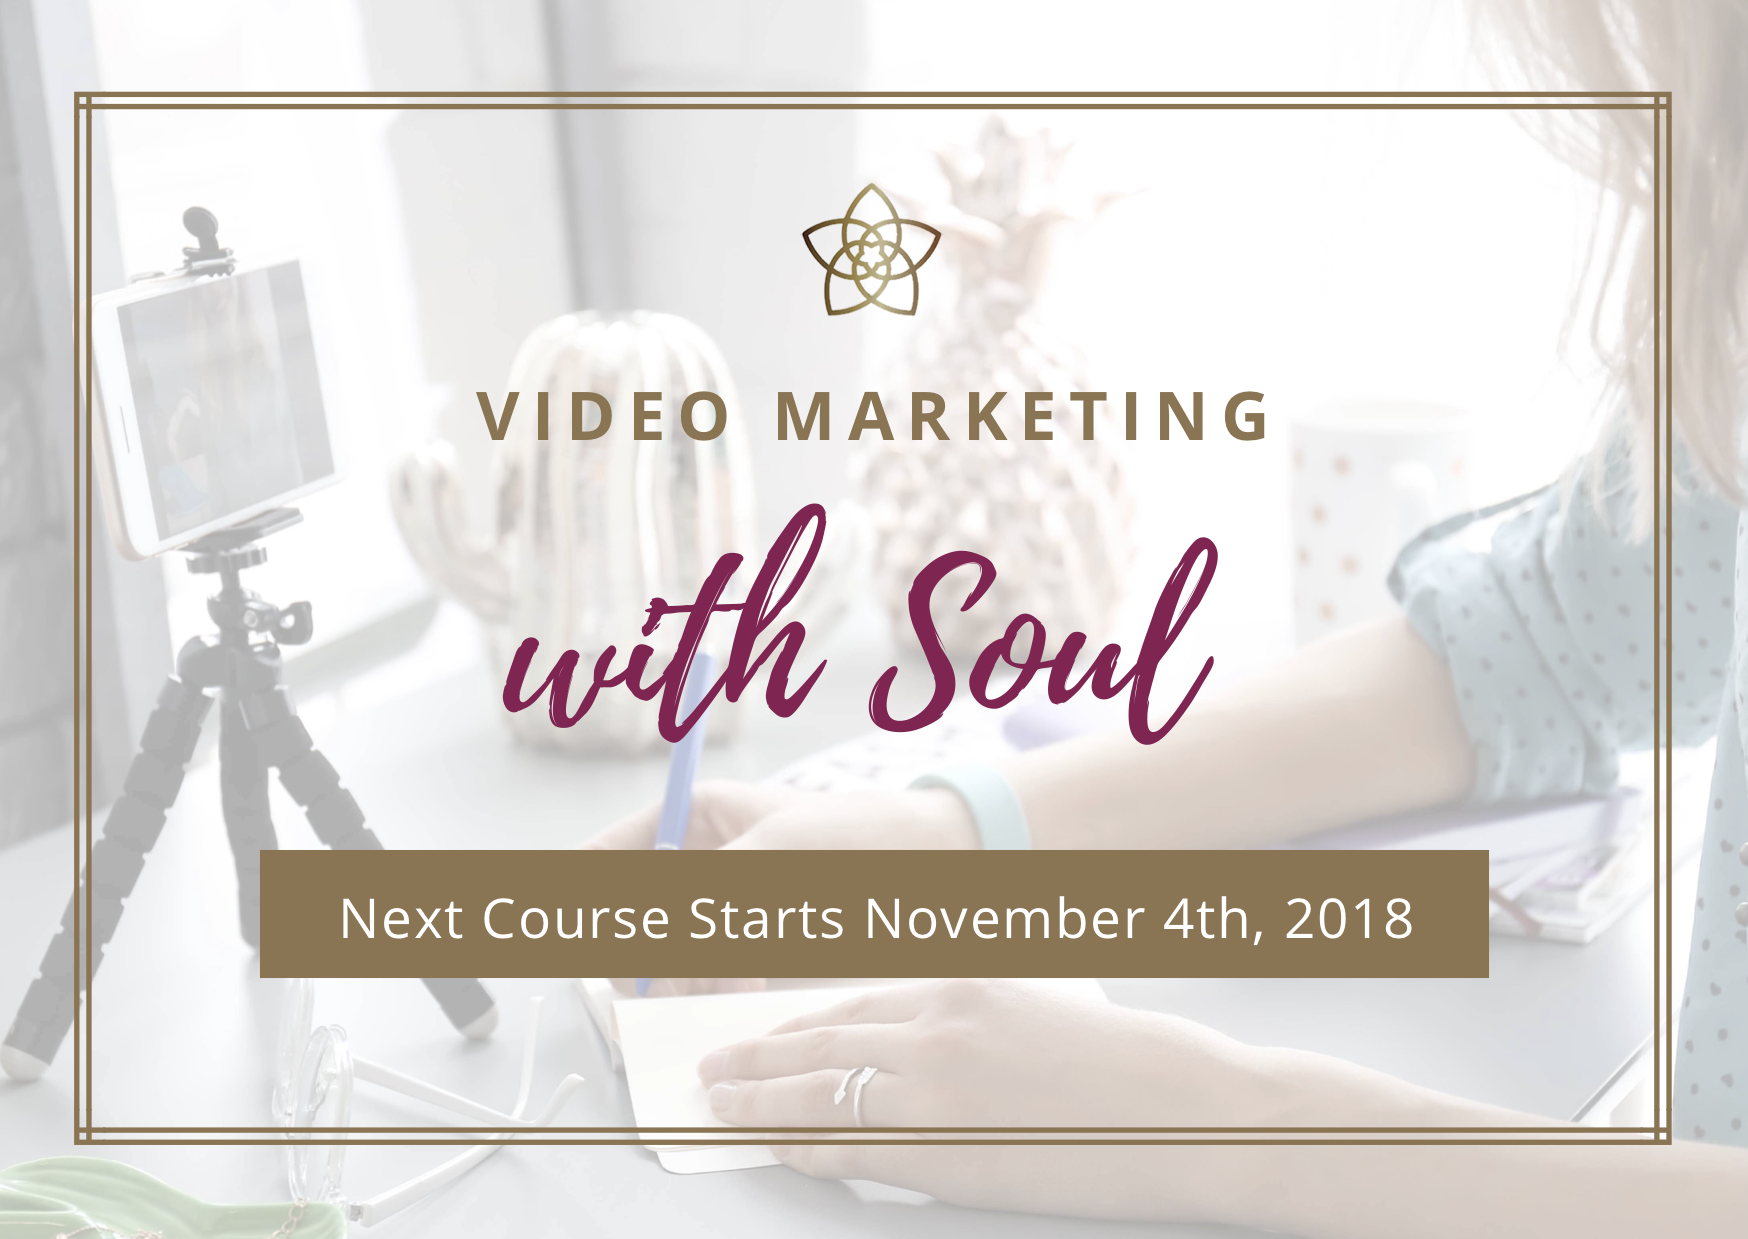 Video Marketing with Soul Online Course - Discover the how-to of video making to share your business story, connect with your audience and grow your community. Designed for heart-centred women entrepreneurs who are ready to shine and stand out from the crowd.